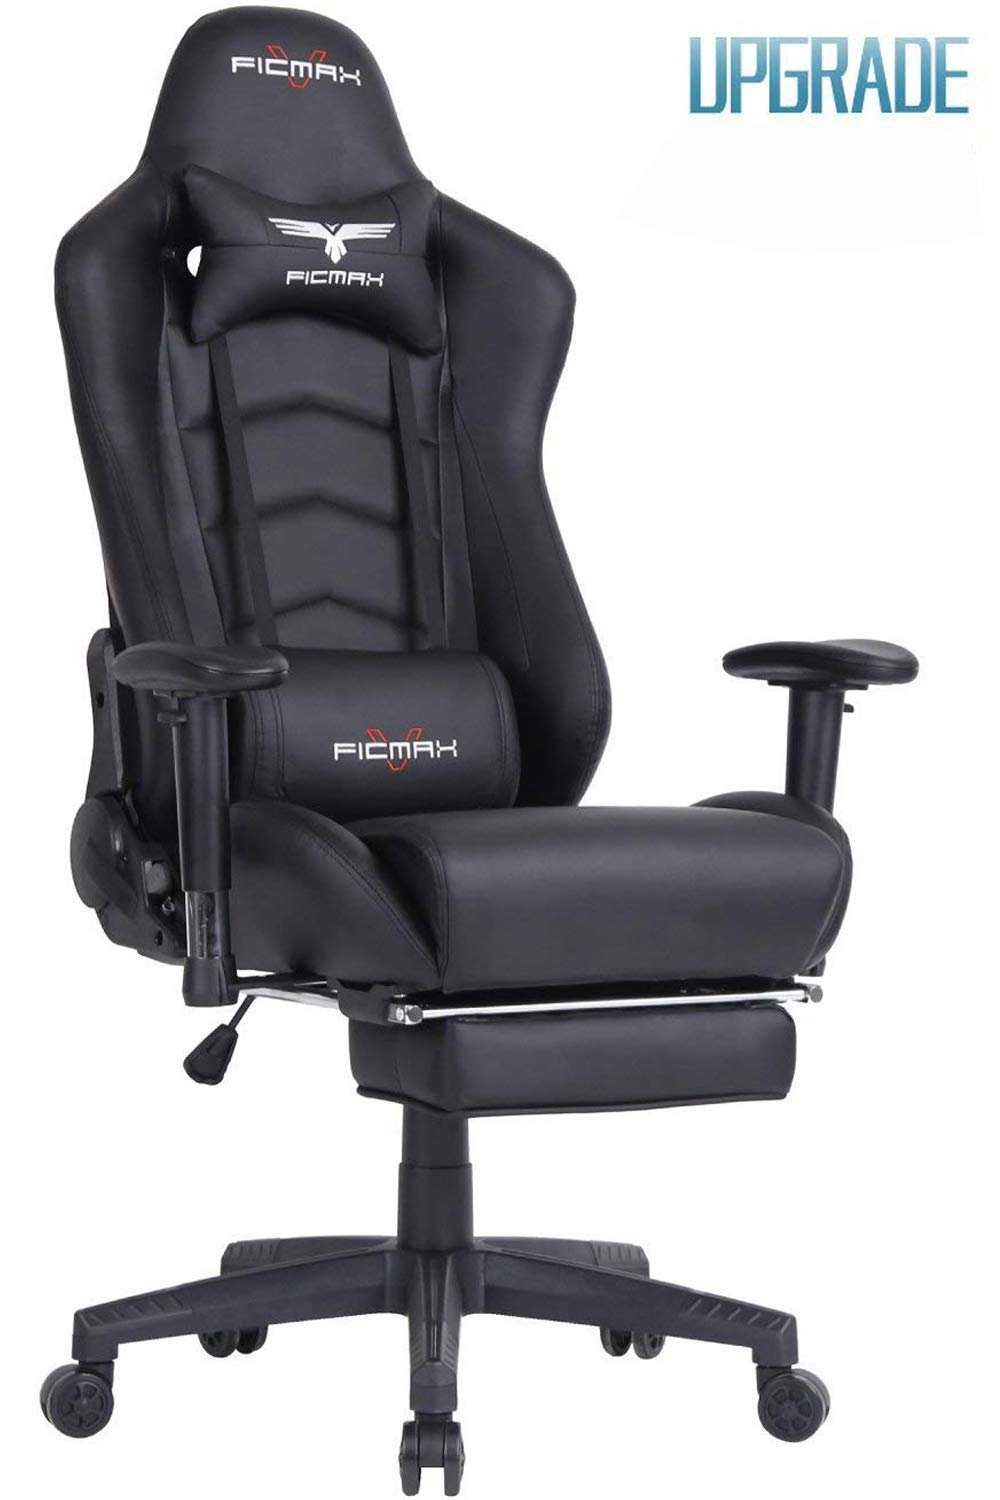 Ficmax Ergonomic PC Gaming Chair